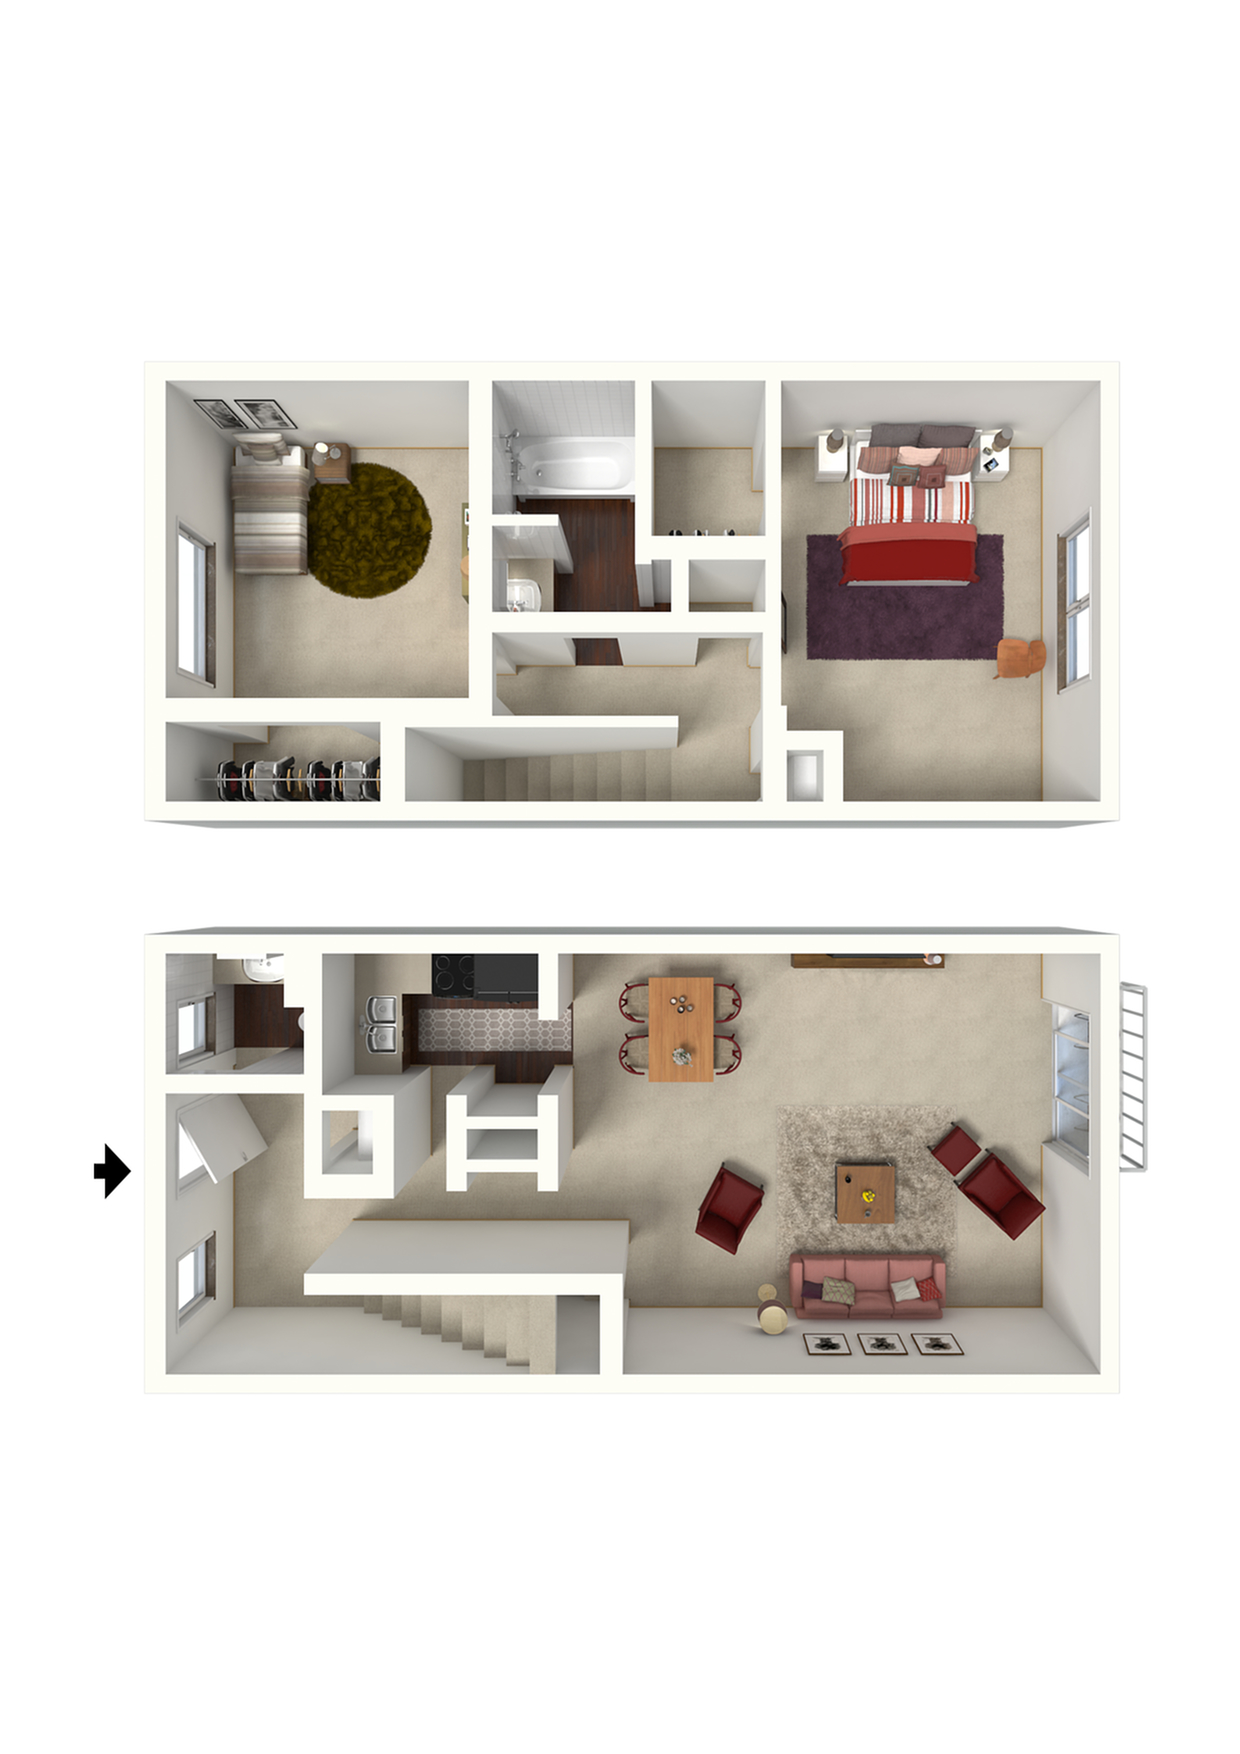 2x1.5 Townhouse - 1015 SqFt.